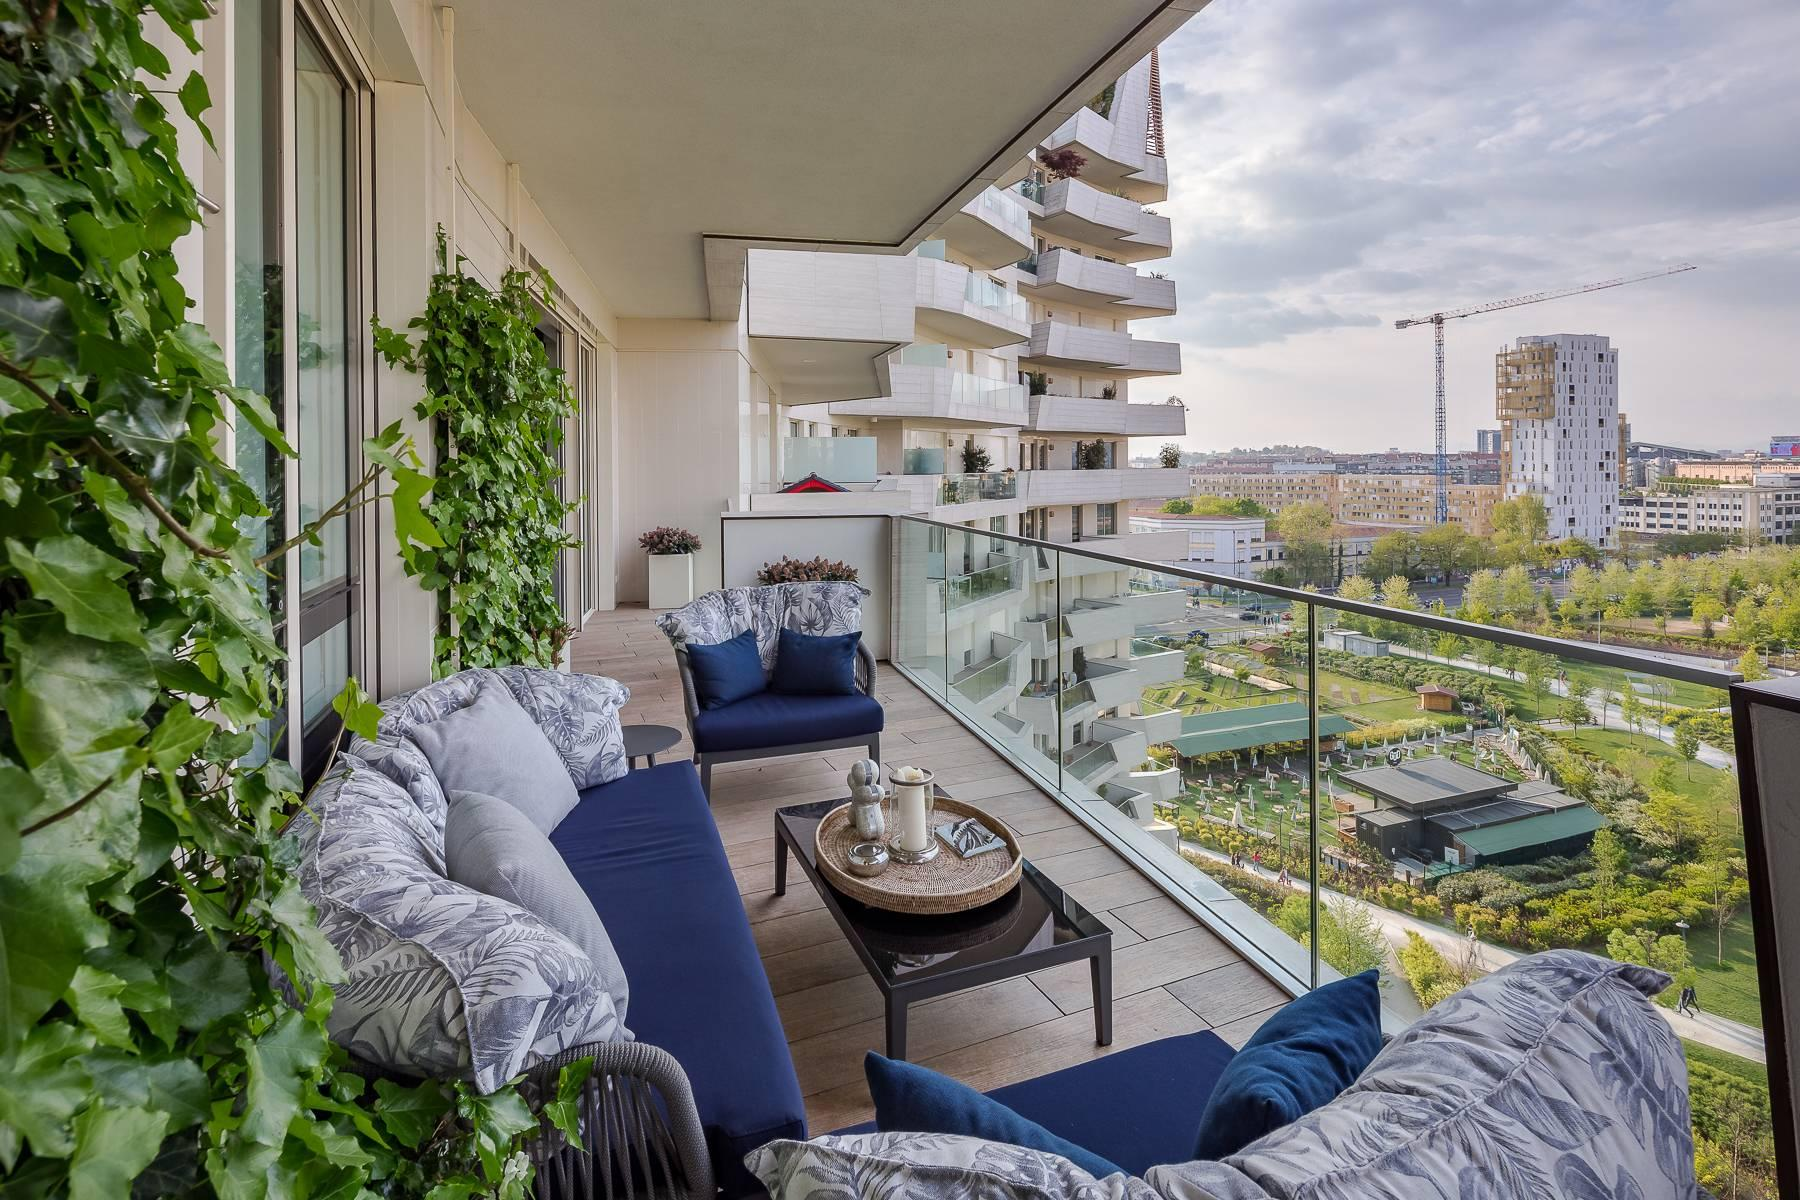 Wonderful apartment with terrace designer furniture in the City Life district - 41